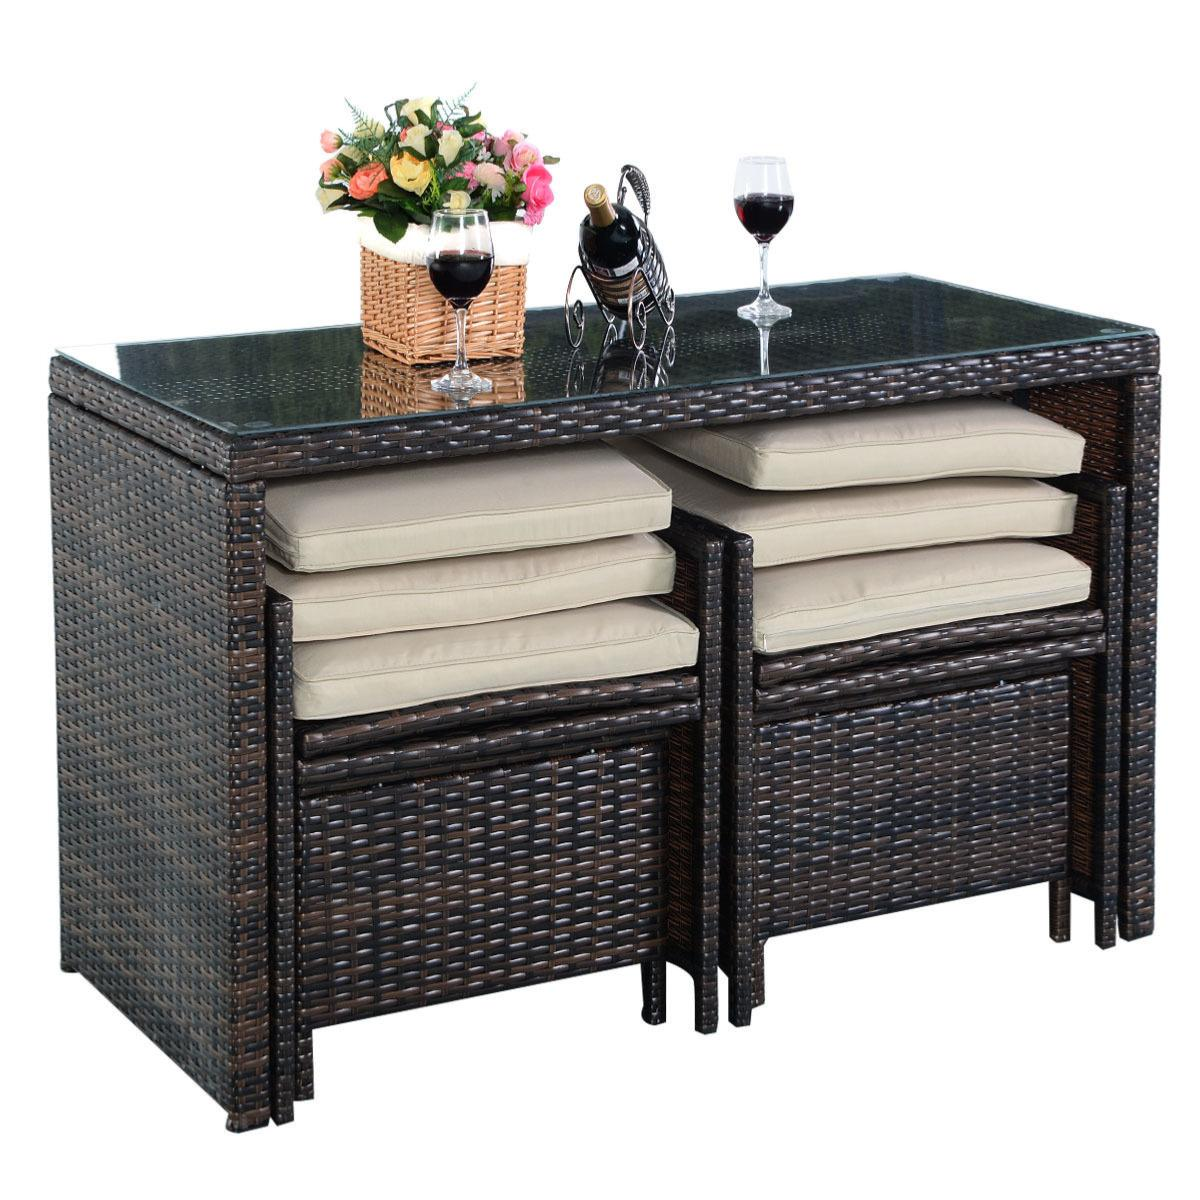 salon bar de jardin en r sine tress e 4 places. Black Bedroom Furniture Sets. Home Design Ideas